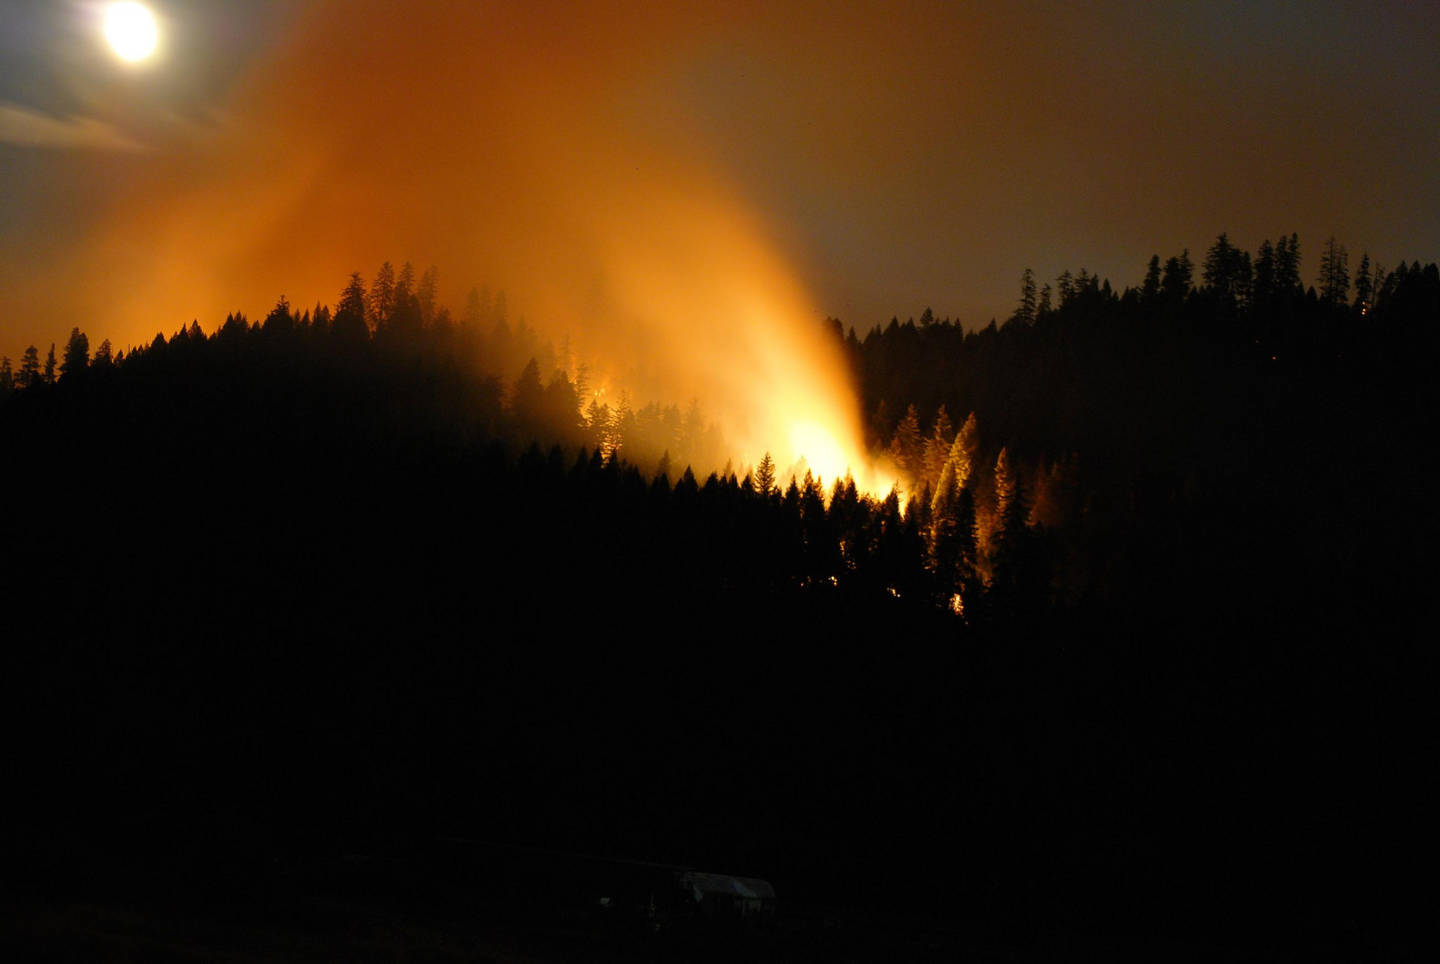 There are fewer lightning caused fires this year like the Happy Camp Complex Fire (above) which was started by a lightning strike in 2014. U.S. Forest Service